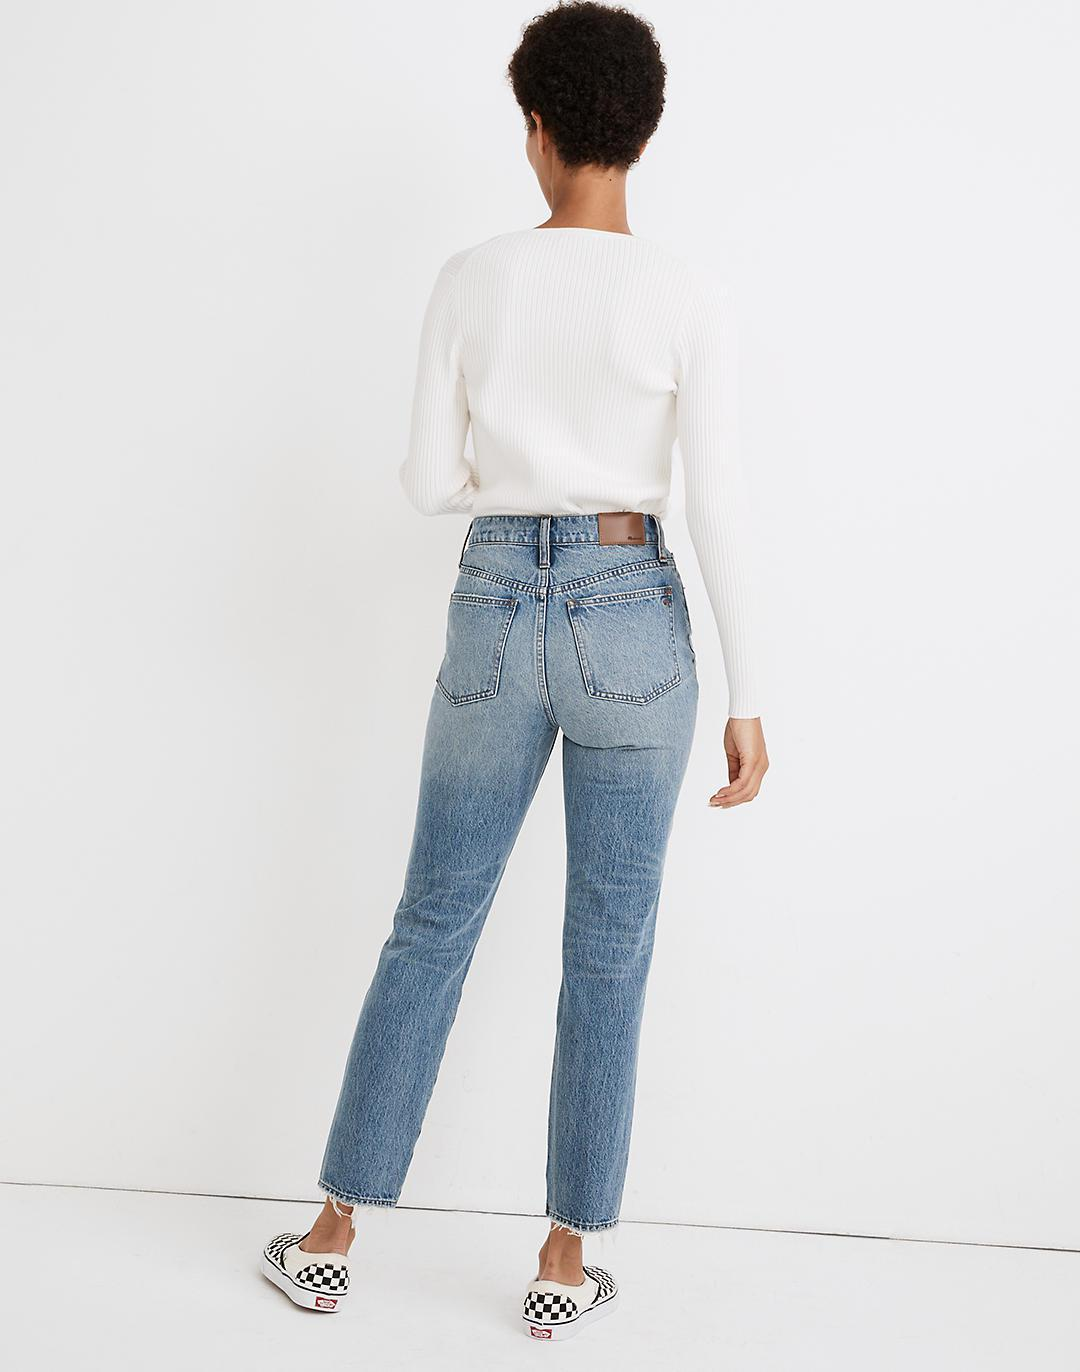 The Perfect Vintage Jean in Phillips Wash: Knee-Rips Edition 2